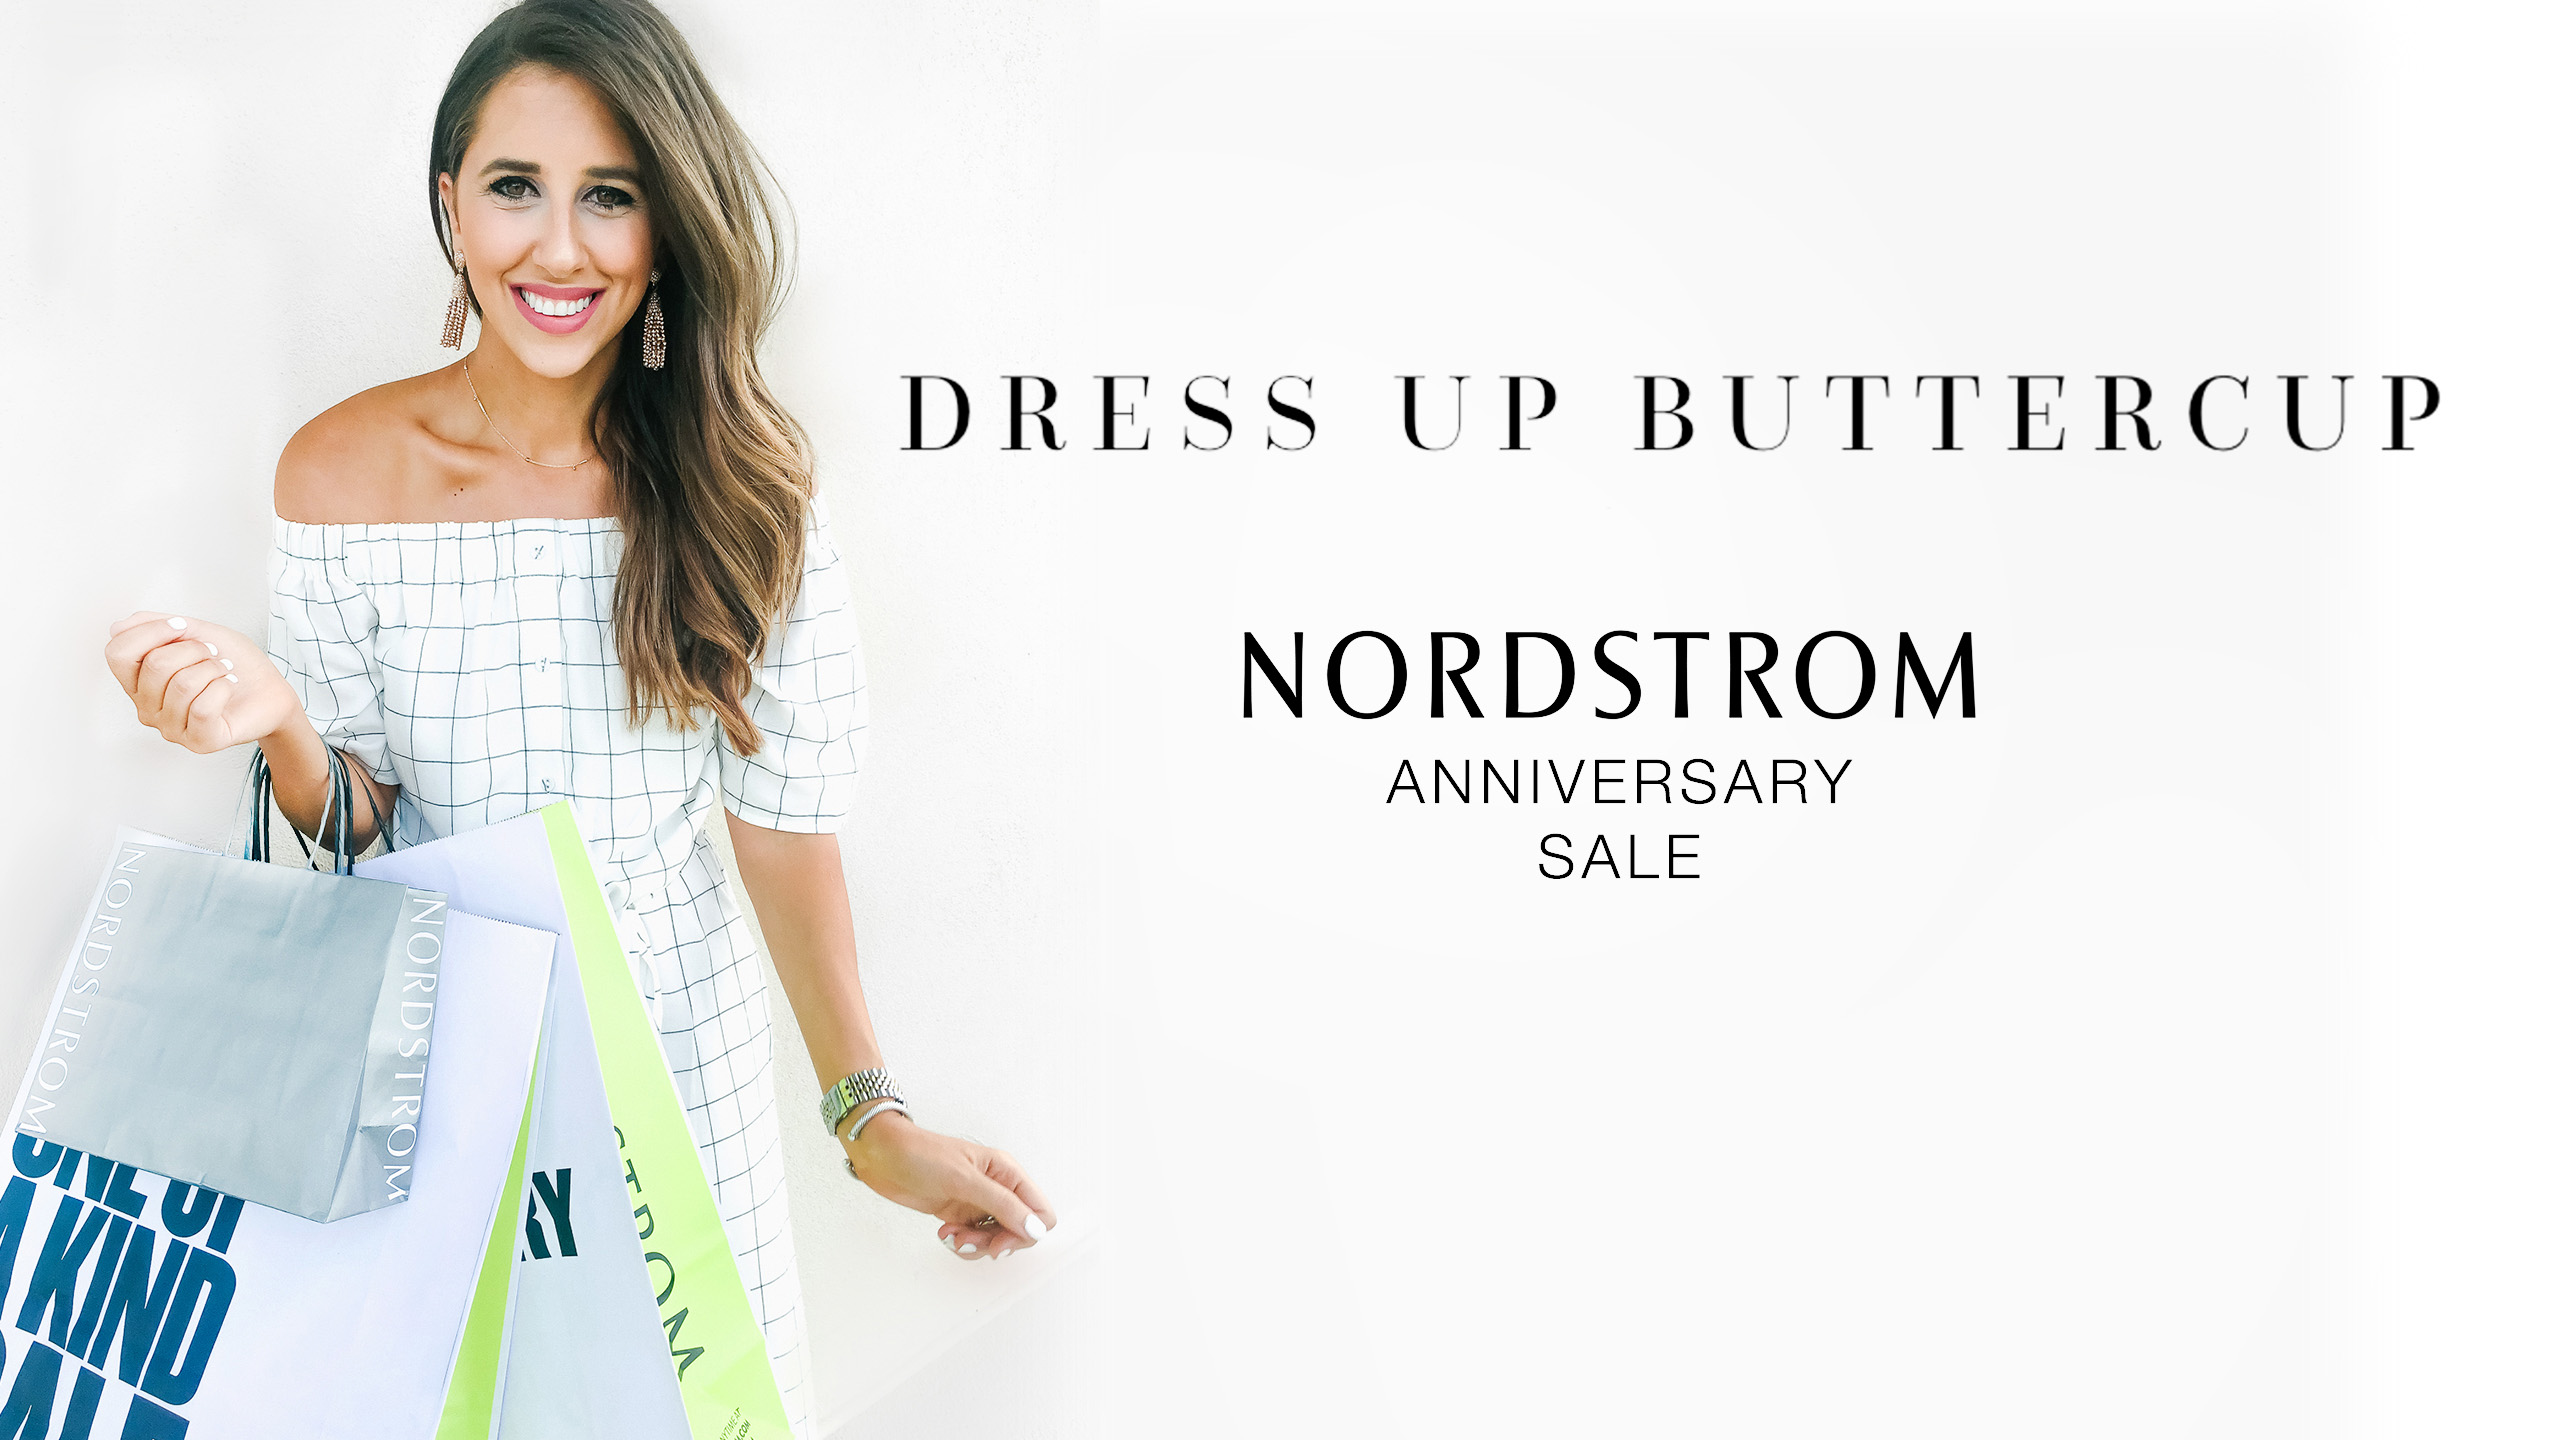 Dress Up Buttercup Nordstrom Anniversary Sale 2017